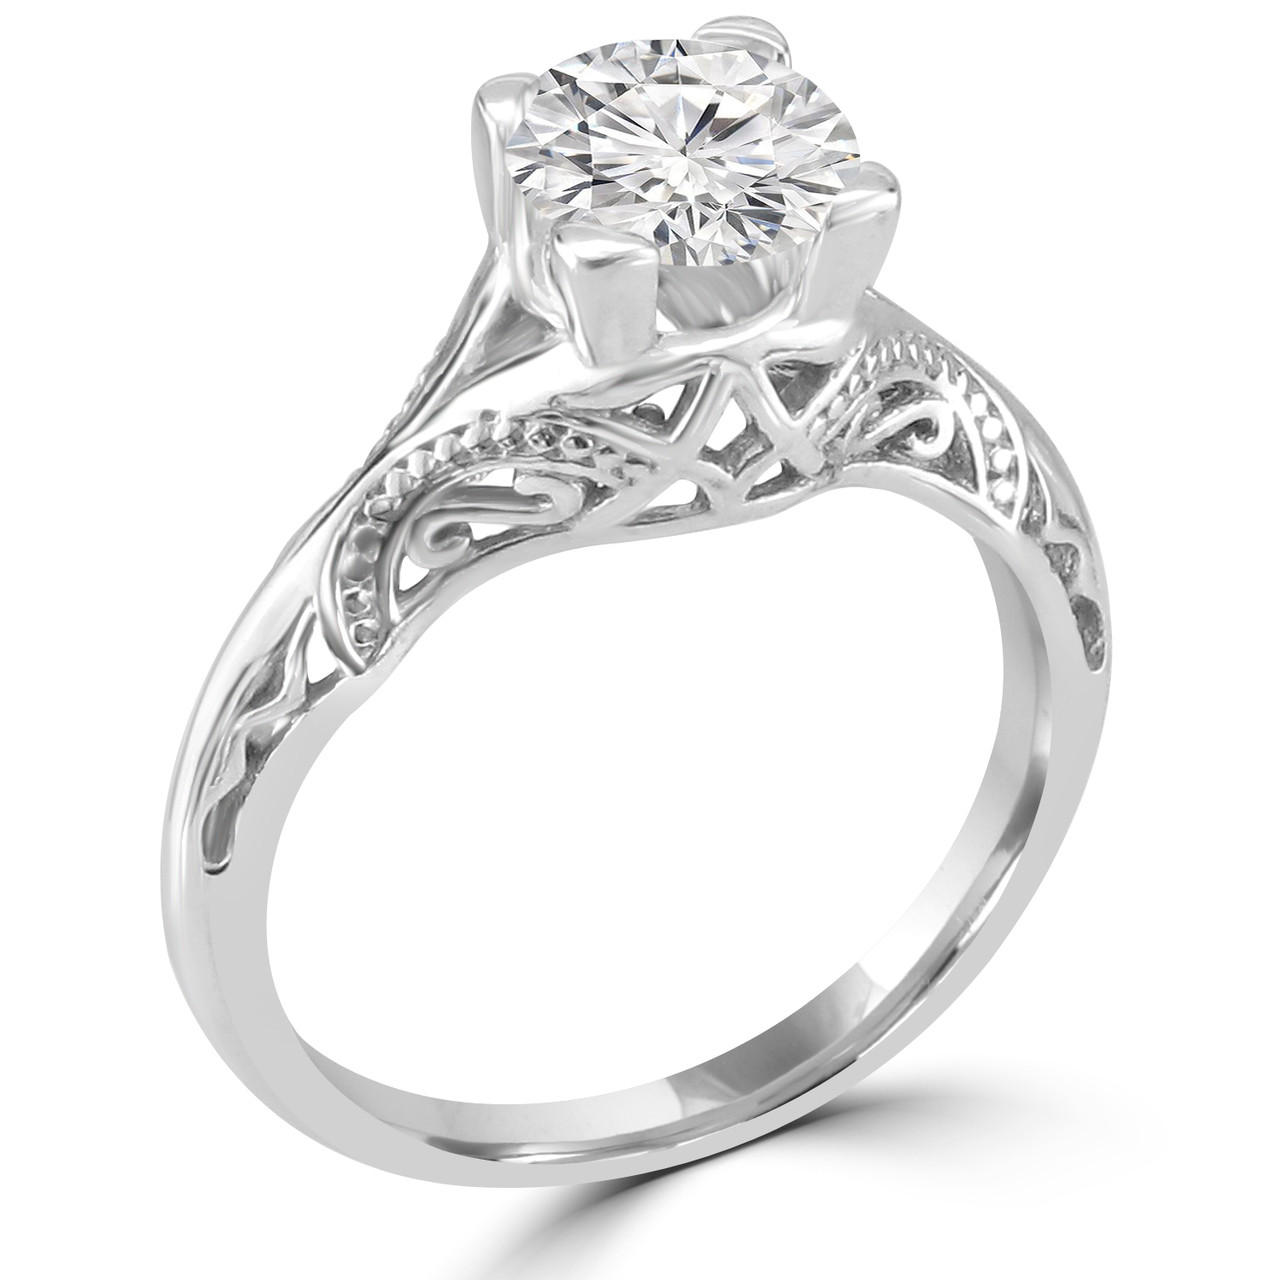 14k white gold vintage inspired engagement ring nagameh style - Vintage Inspired Wedding Rings